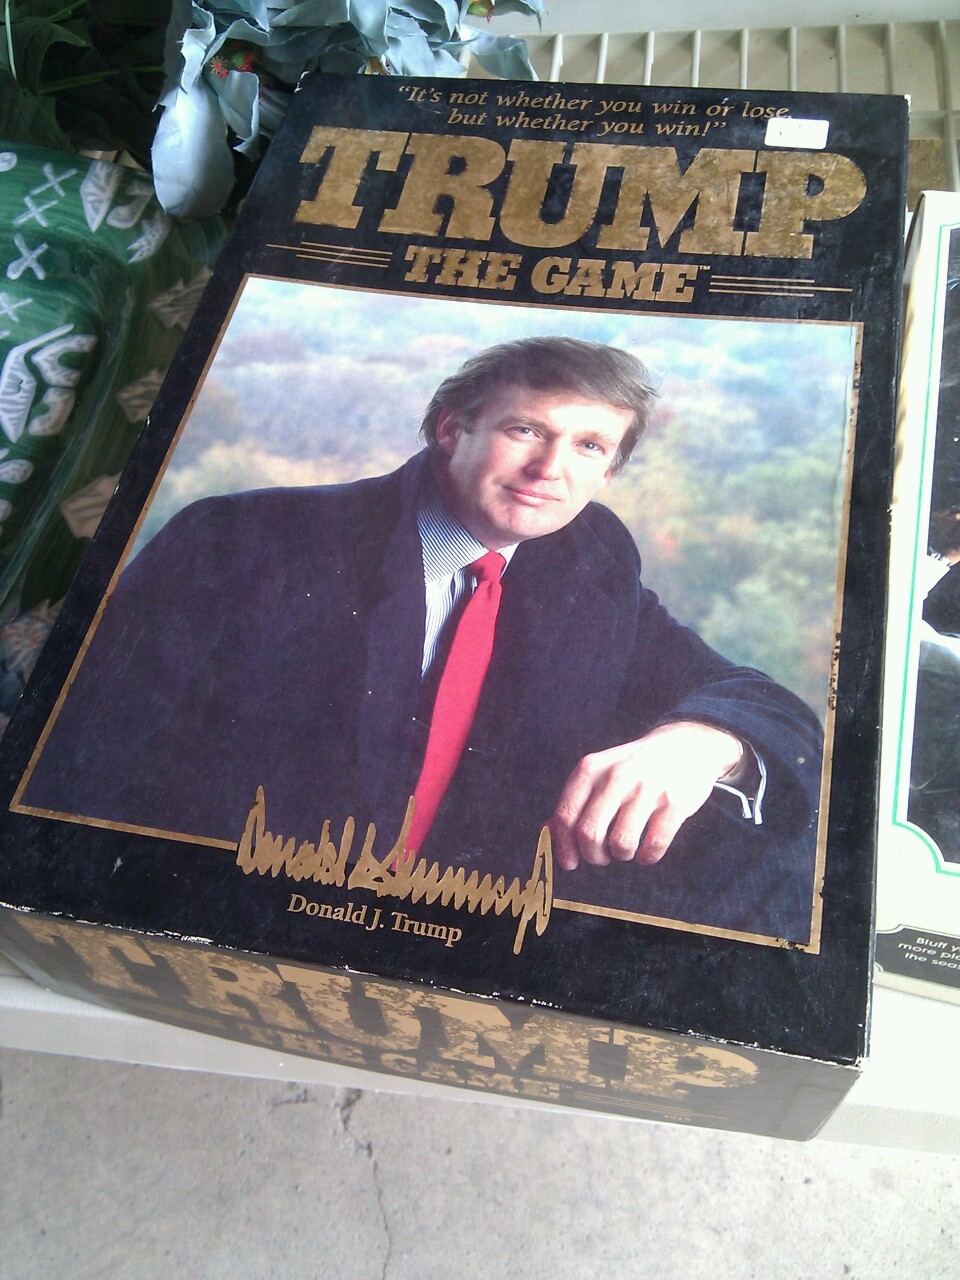 I was garage saling today and saw this for $3.